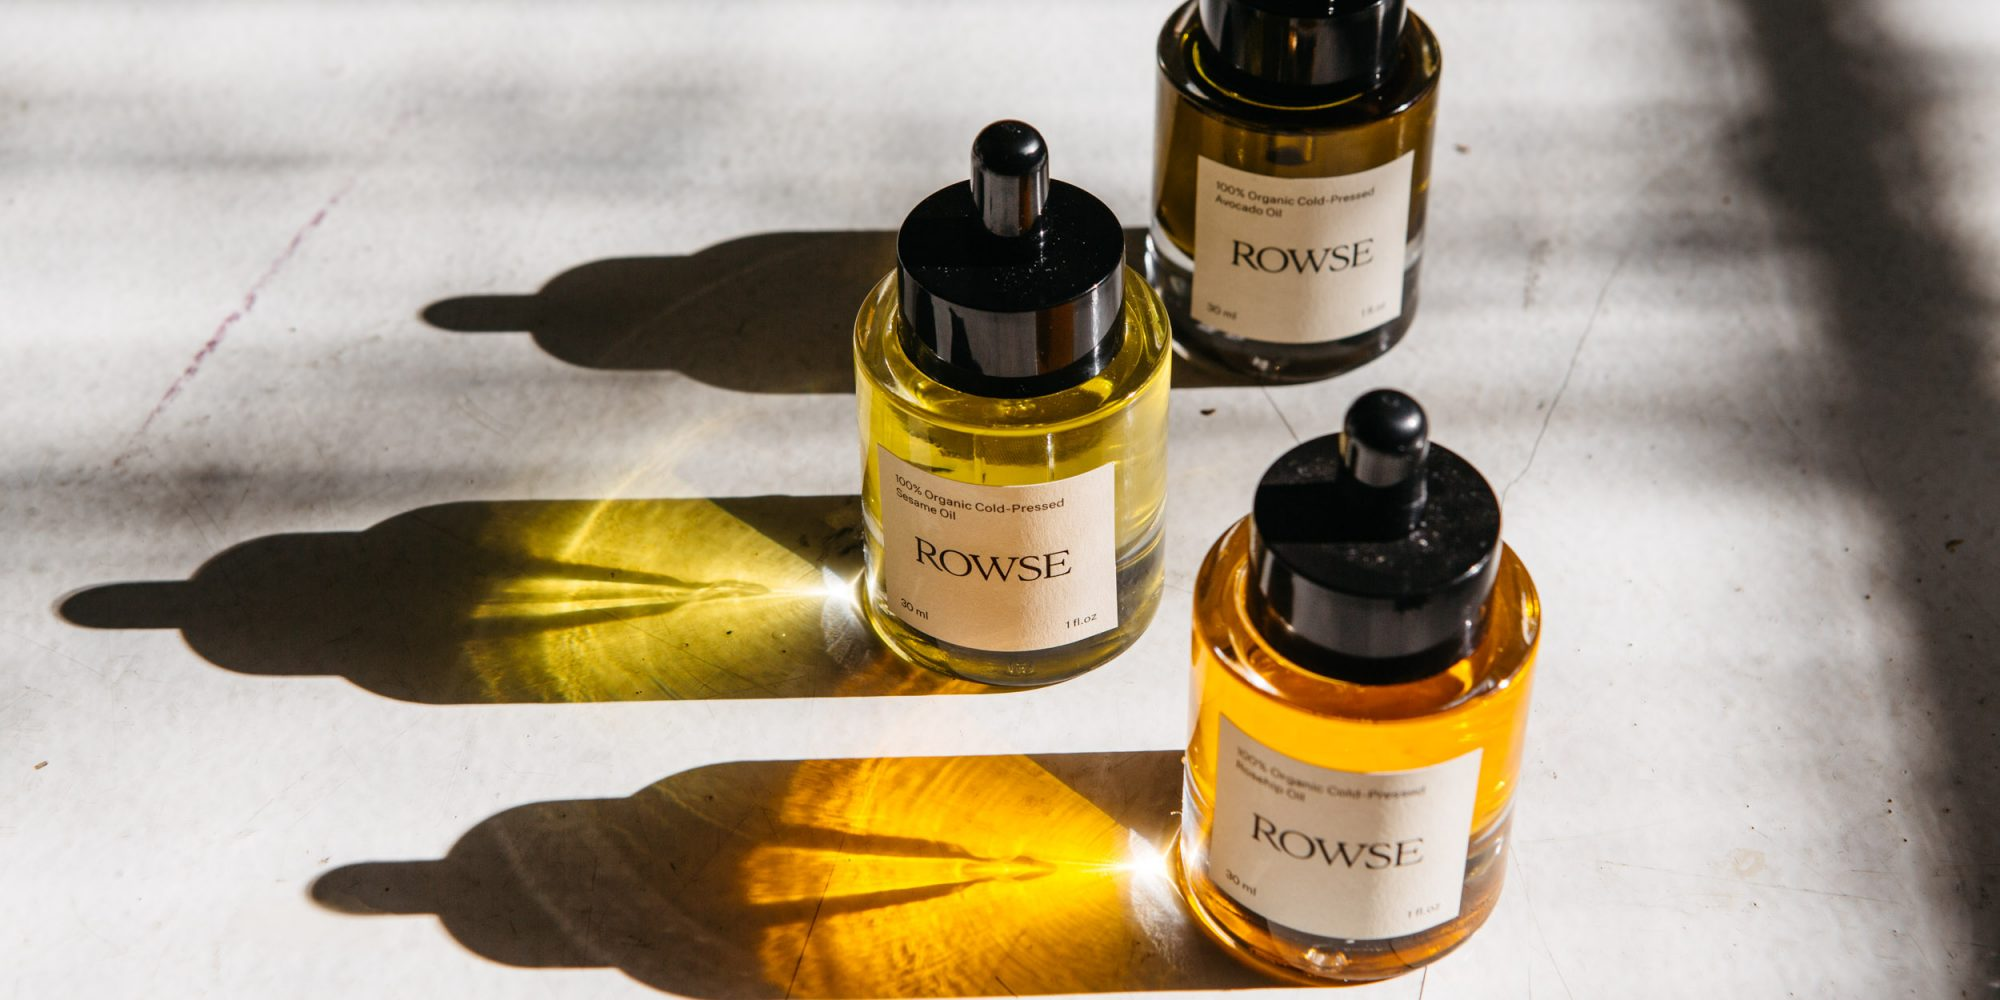 New Plant-Driven Brand Rowse Makes DIY Skincare Fabulously Chic